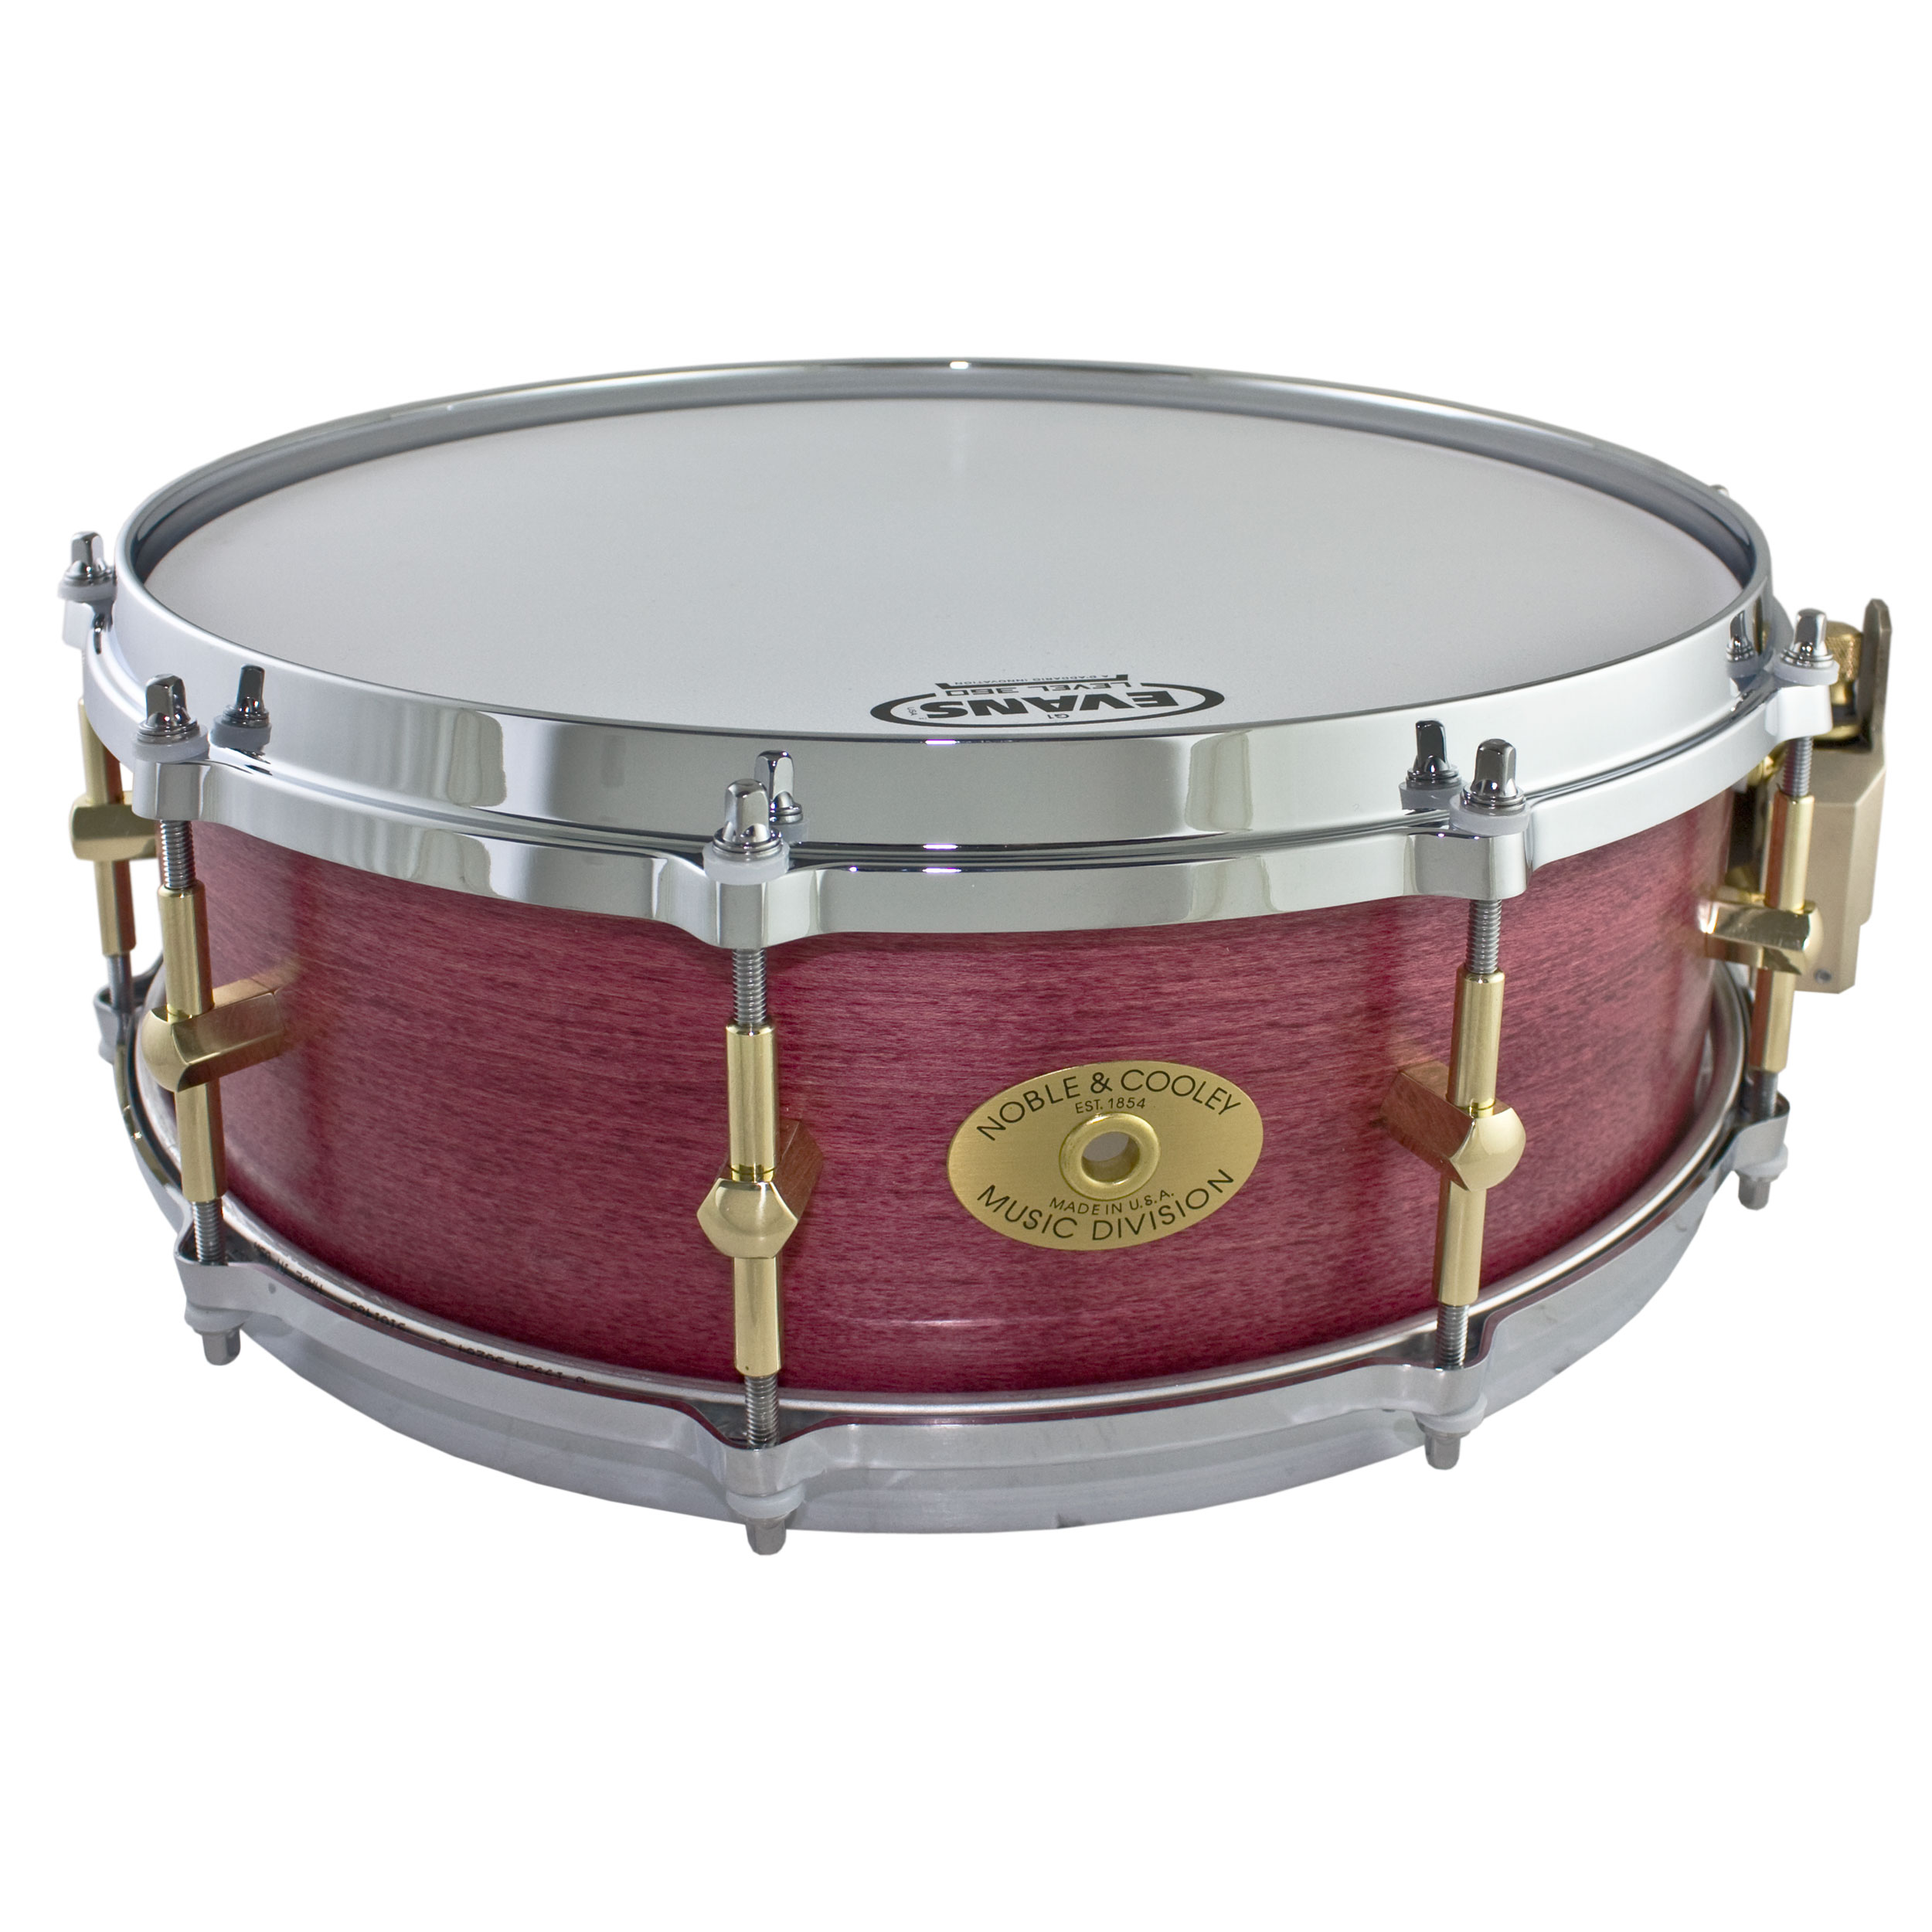 "Noble & Cooley 5"" x 14"" Classic Solid Shell Maple Snare Drum"